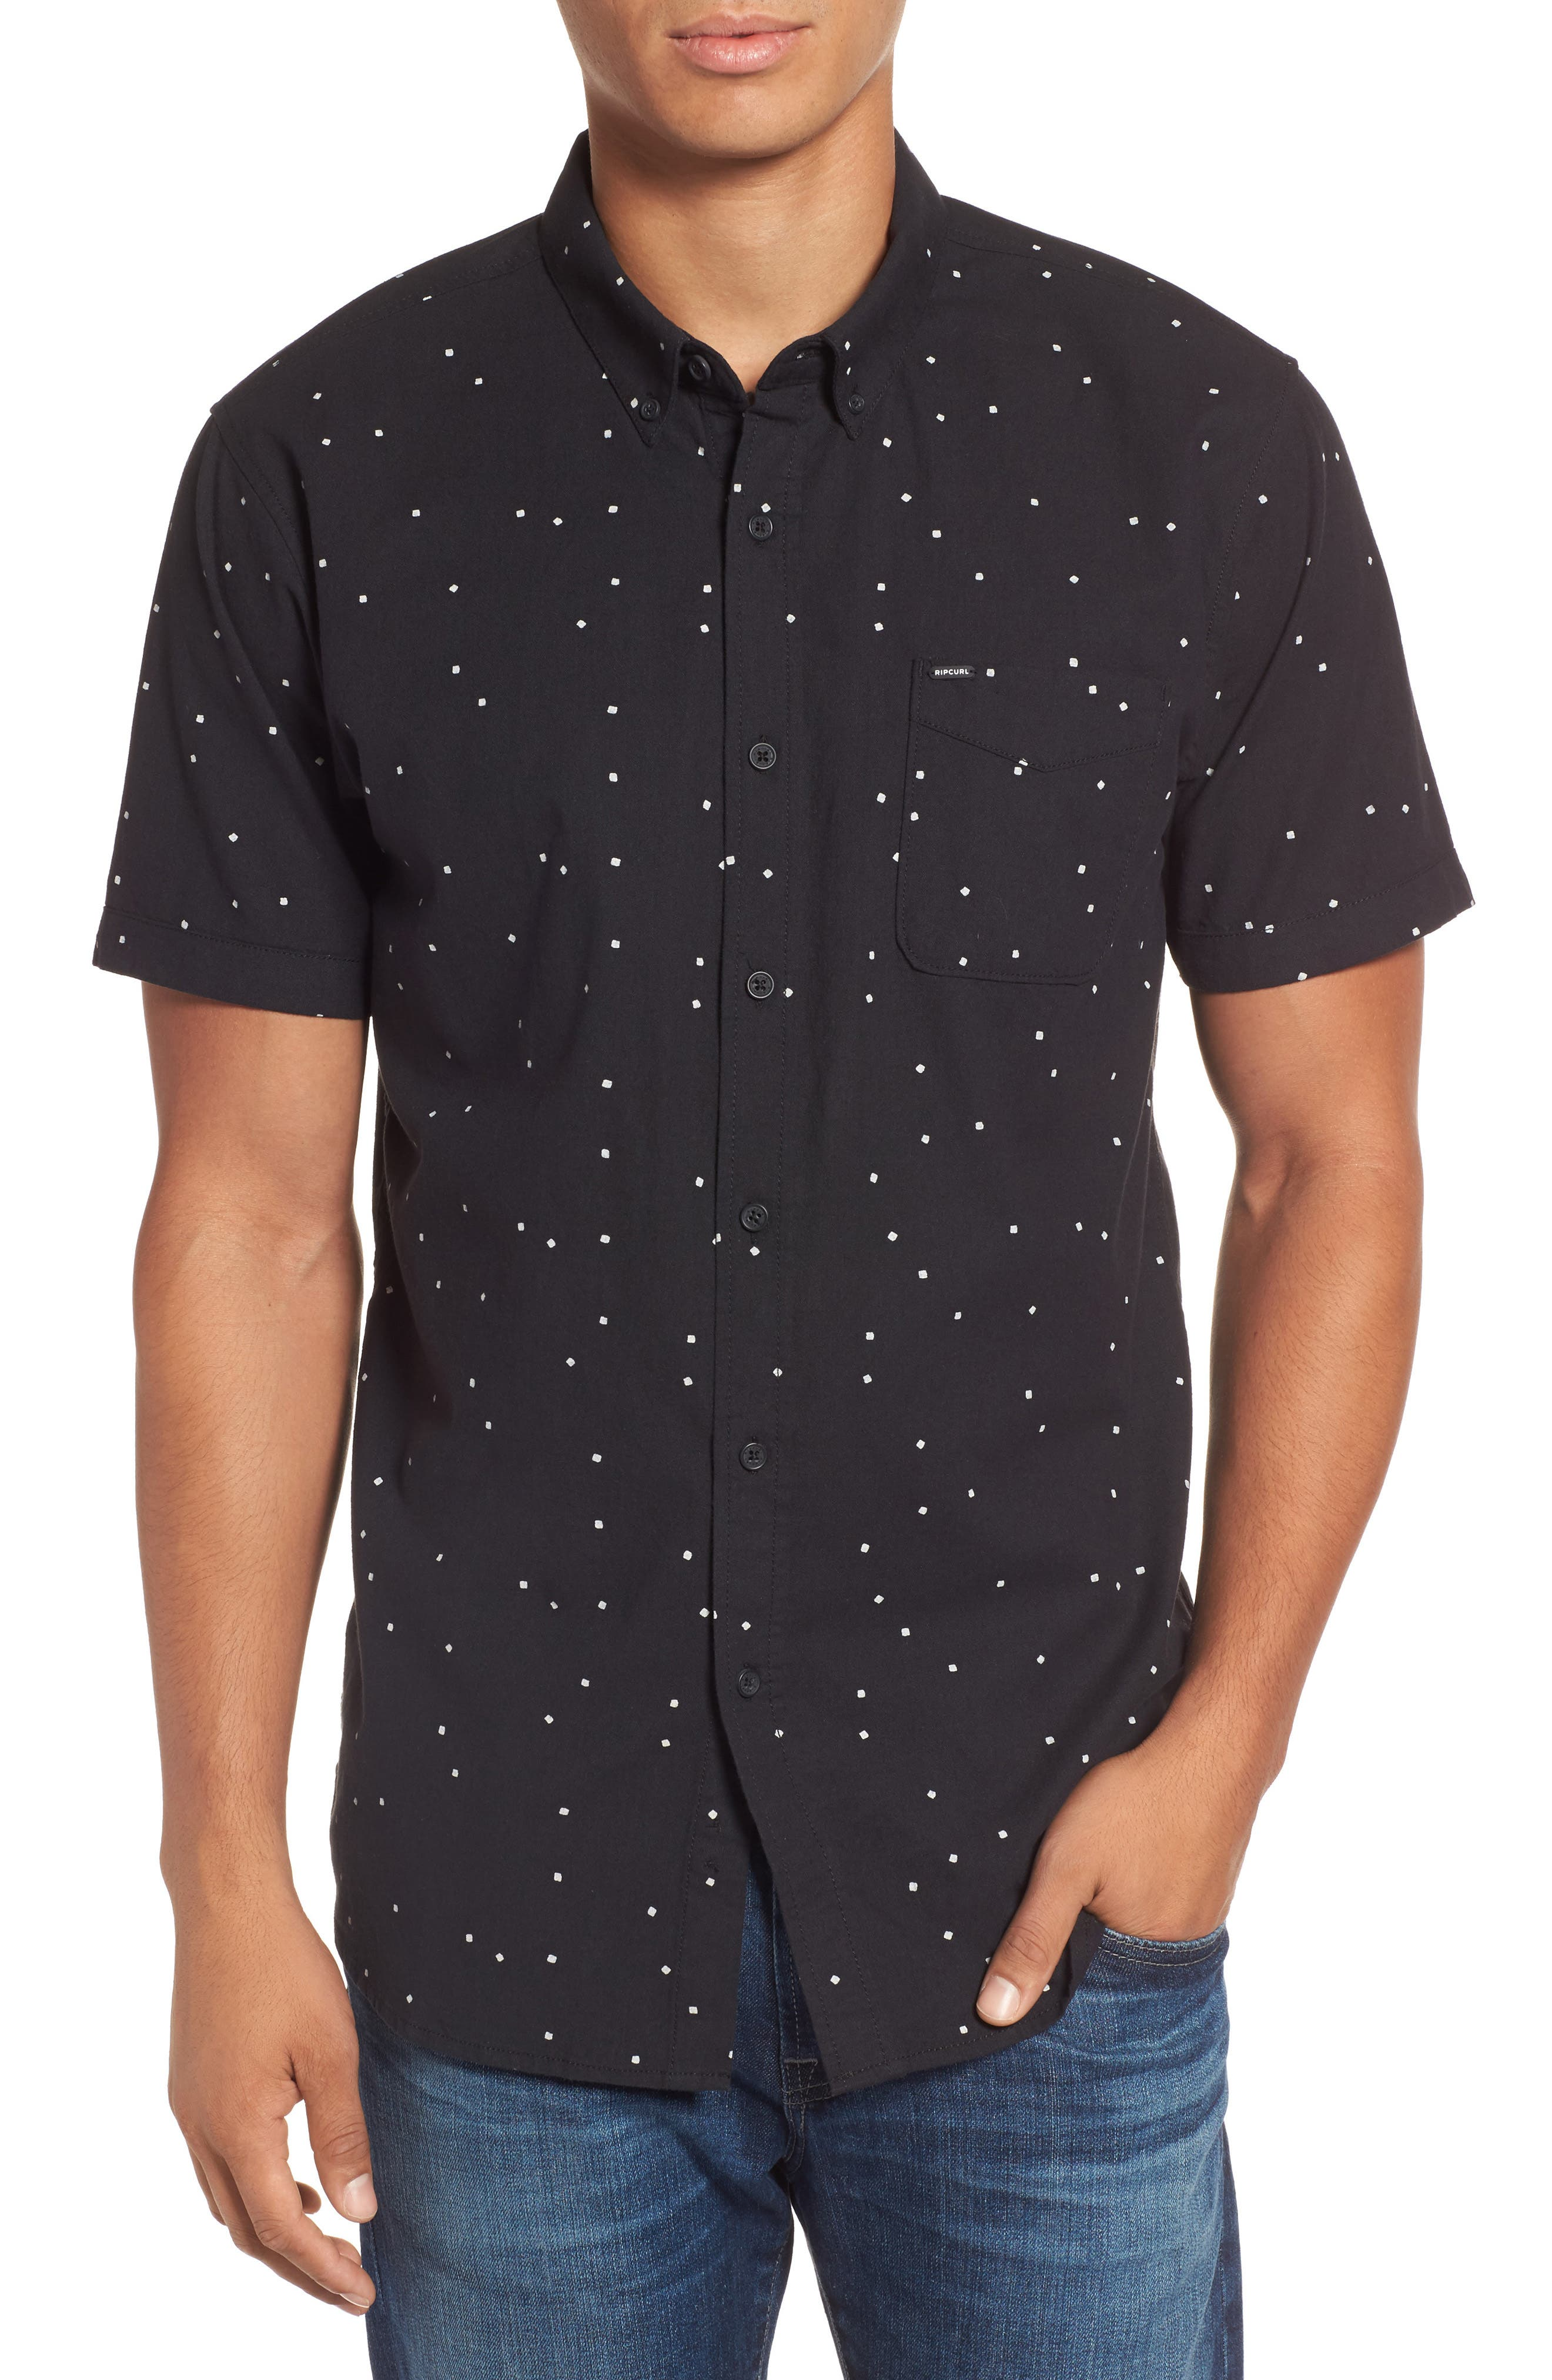 Alternate Image 1 Selected - Rip Curl Mixter Short Sleeve Shirt